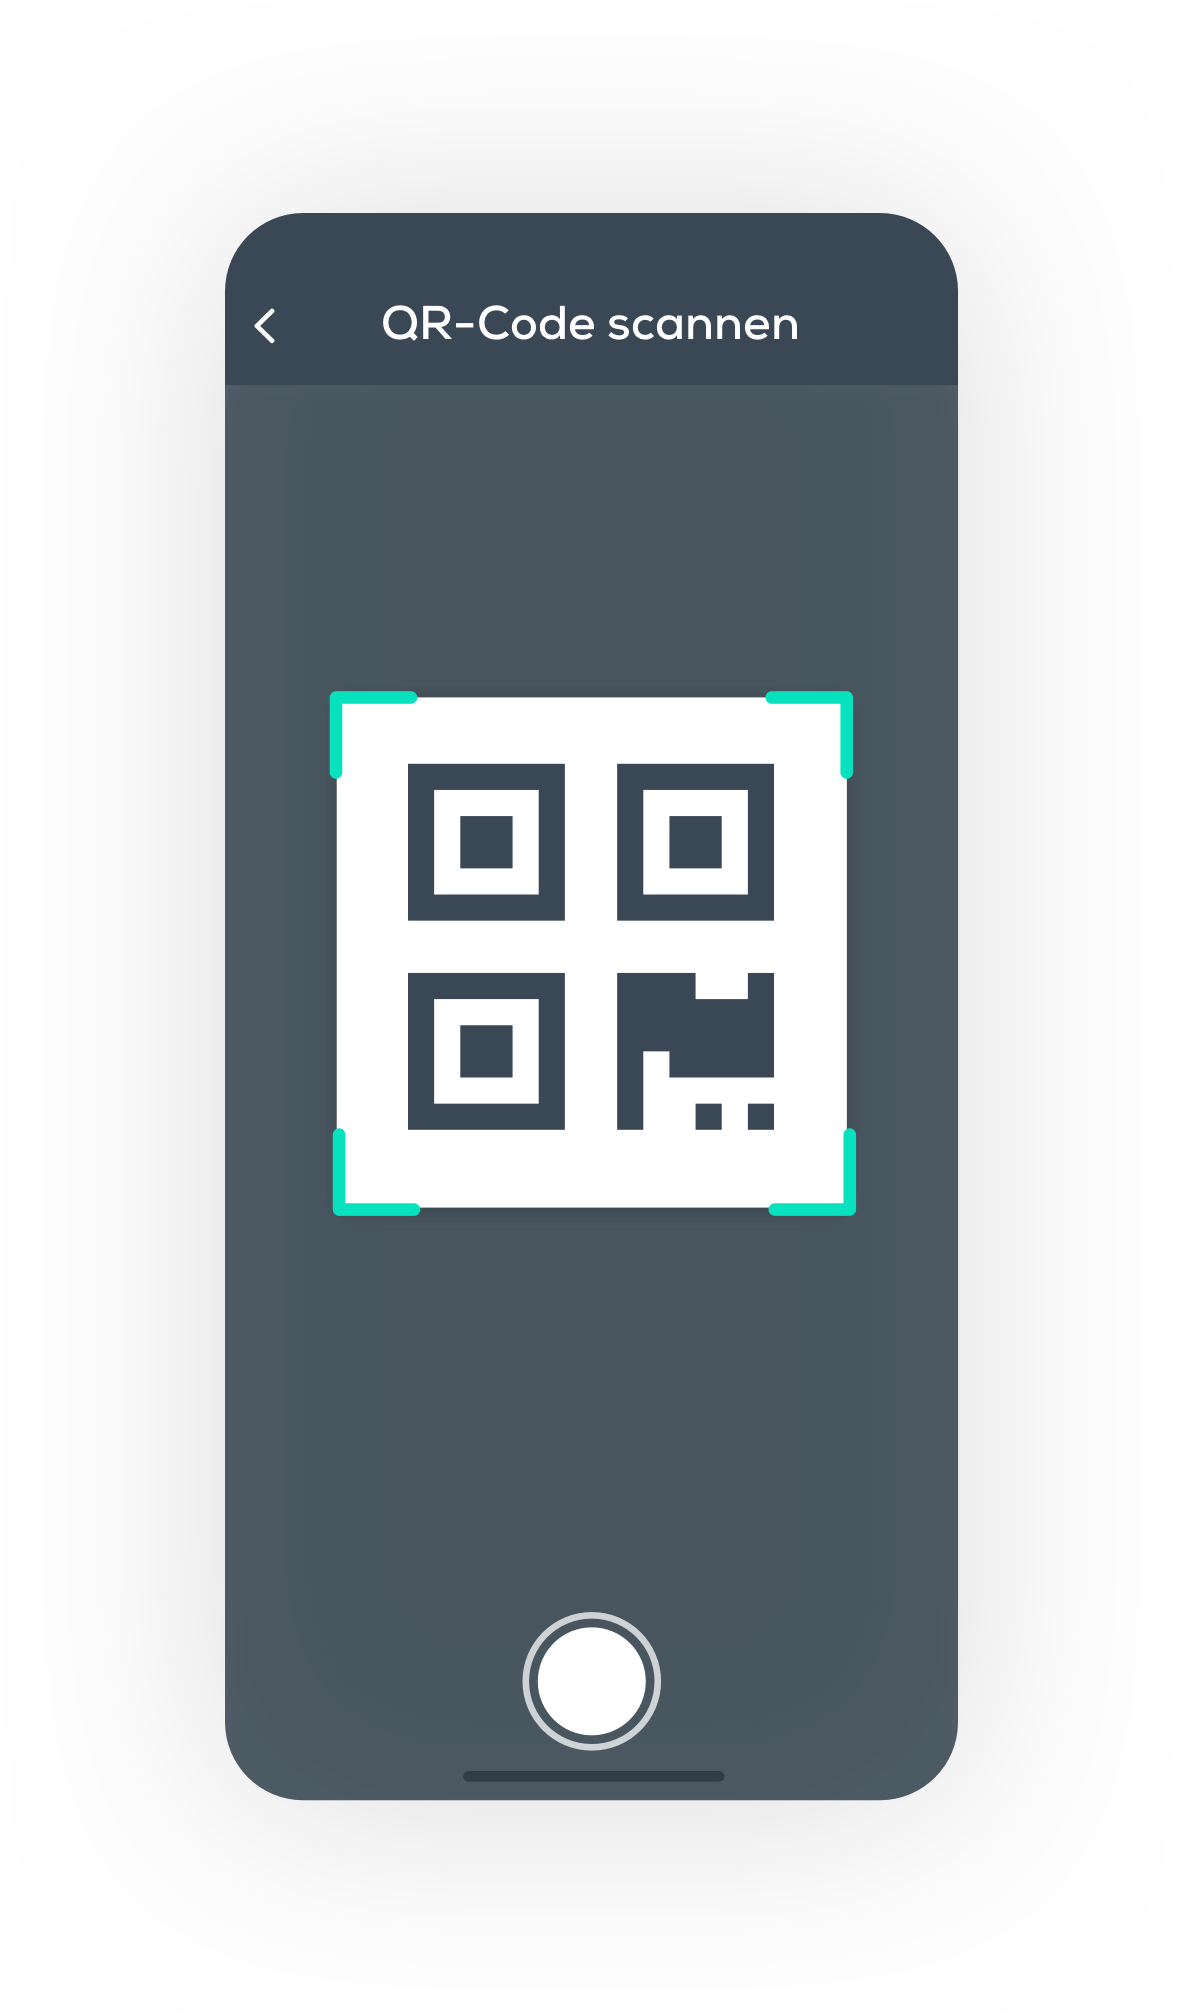 QR-Code Navigation Indoor und Outdoor Multimedial